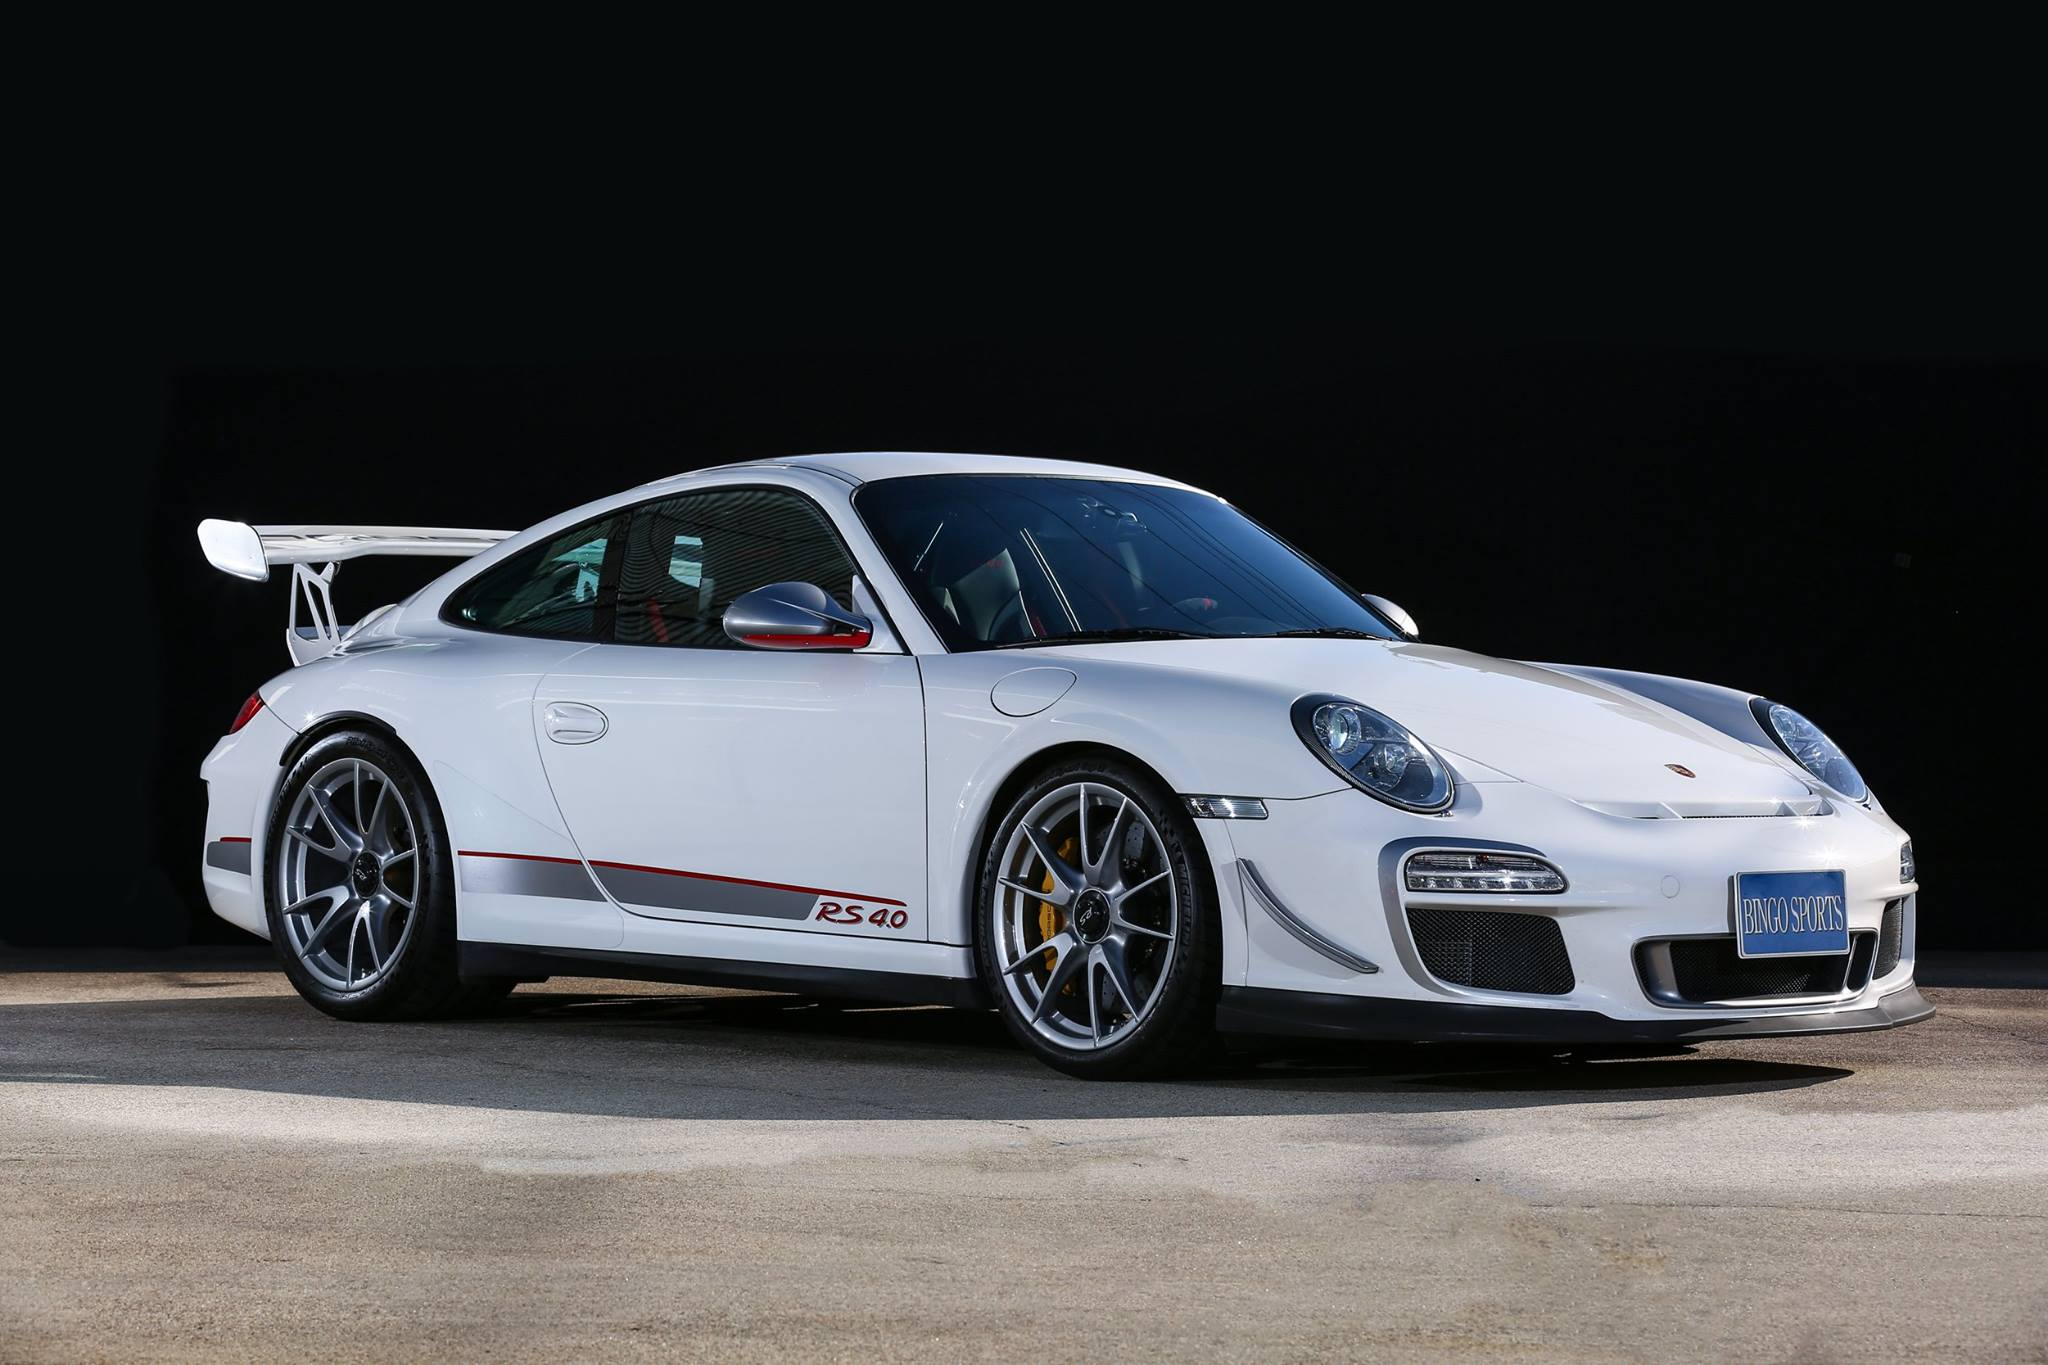 Neat Porsche 911 Gt3 Rs 4 0 For Sale In Japan Gtspirit